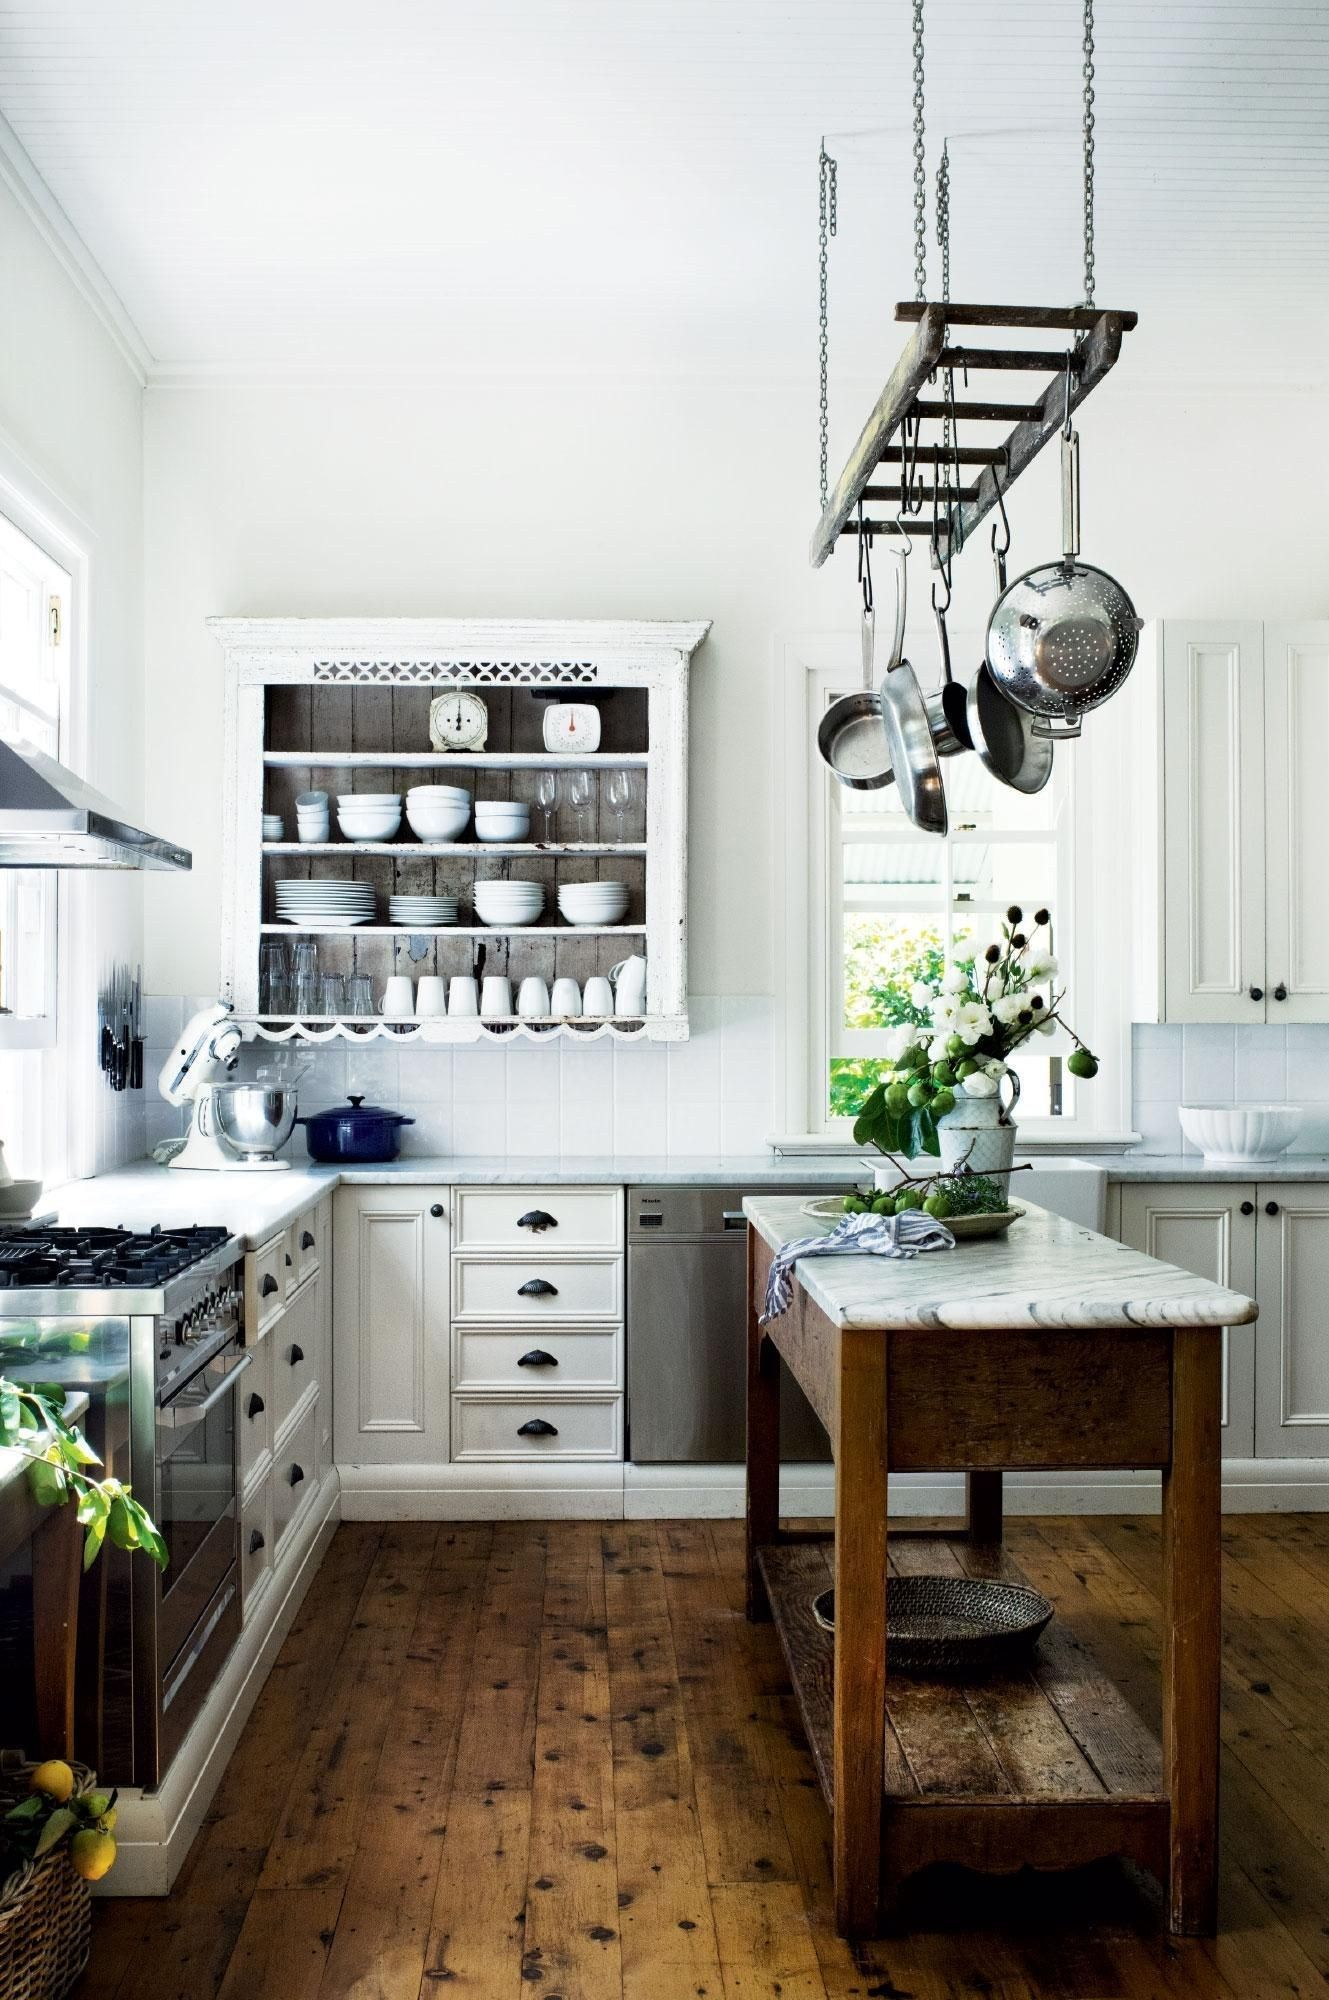 incredible fancy french country kitchen design ideas 17 gurudecor com farmhouse kitchen on kitchen remodel french country id=37047